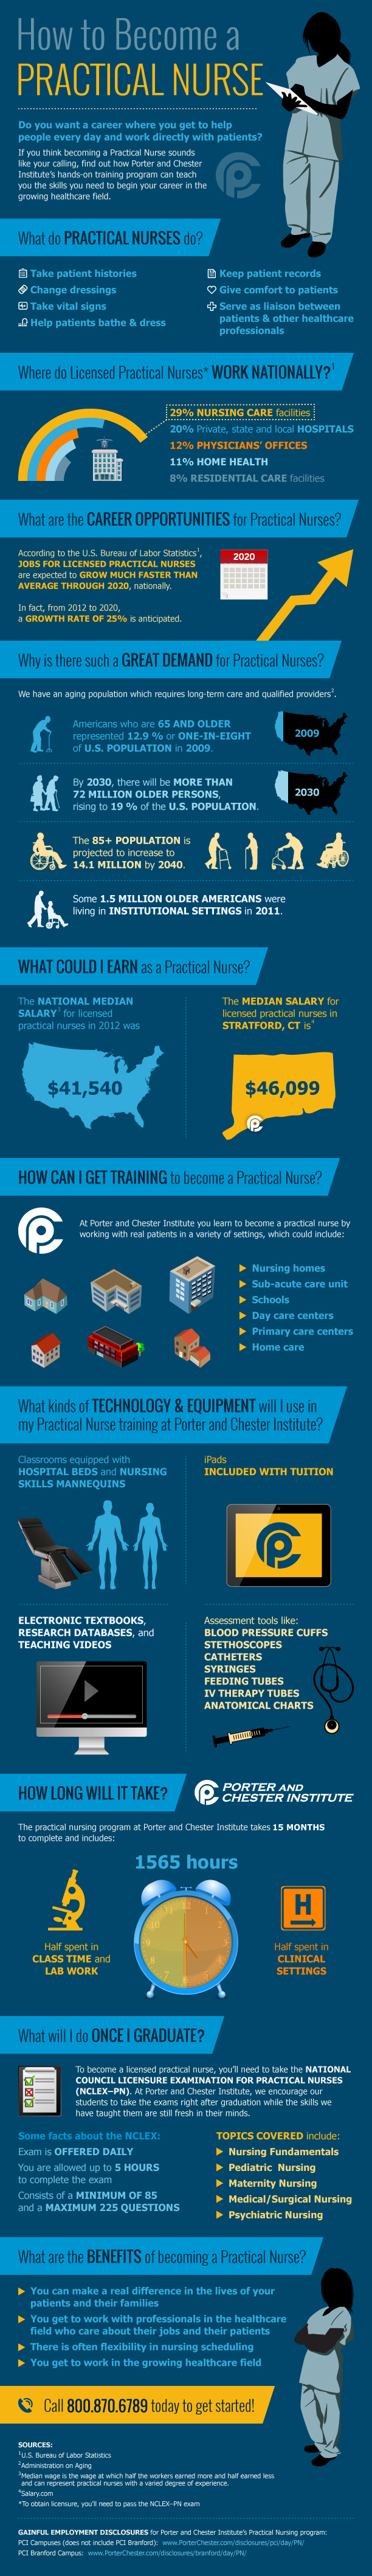 How to become a practical nurse infographic